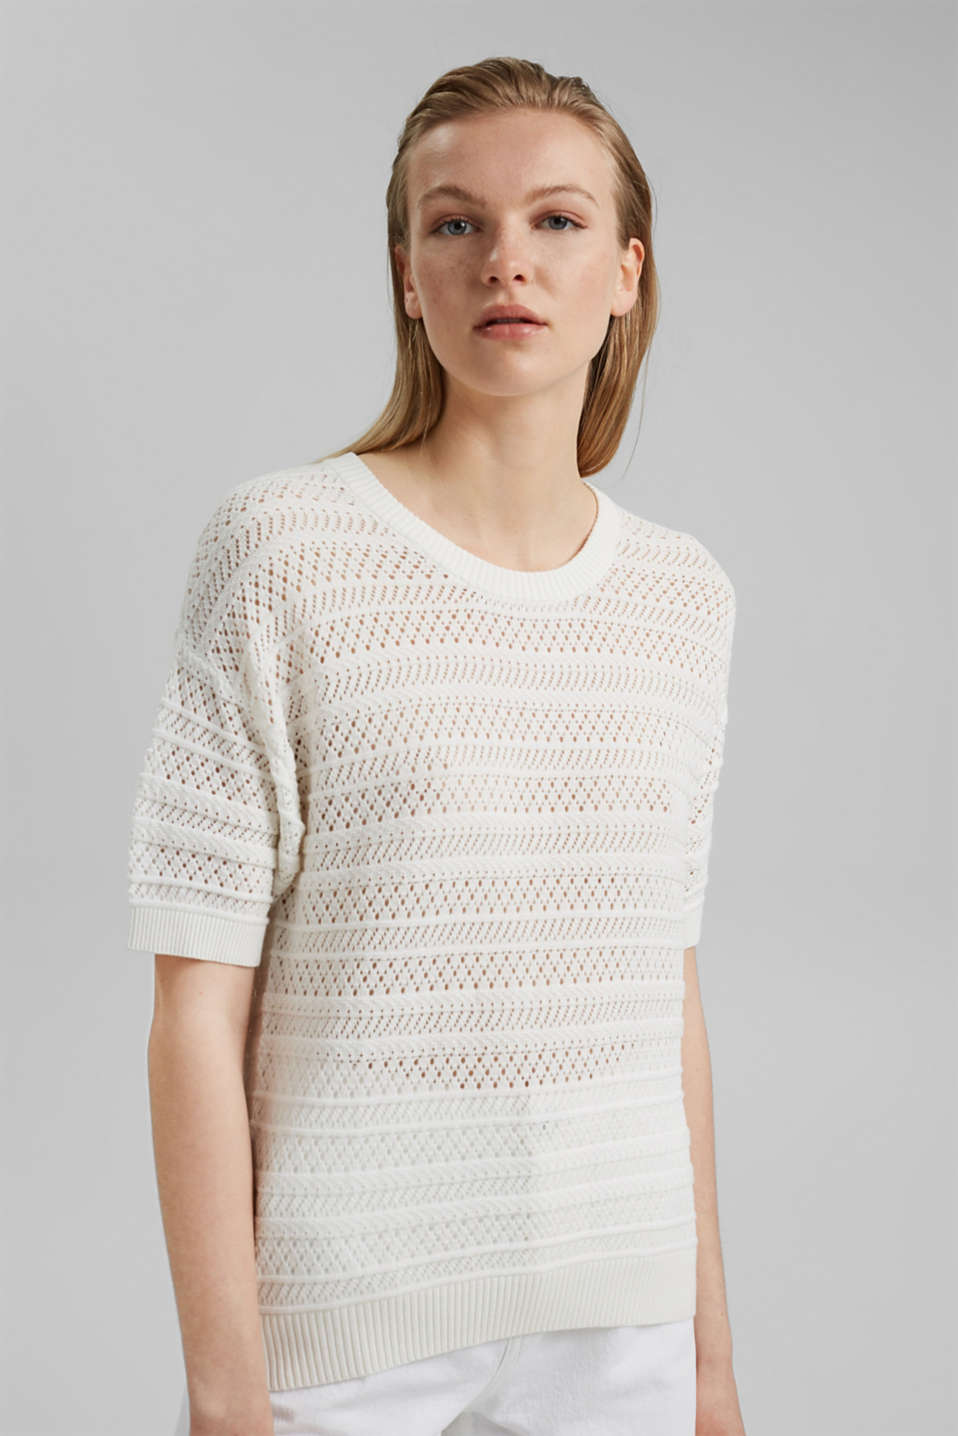 edc - Openwork jumper made of 100% organic cotton